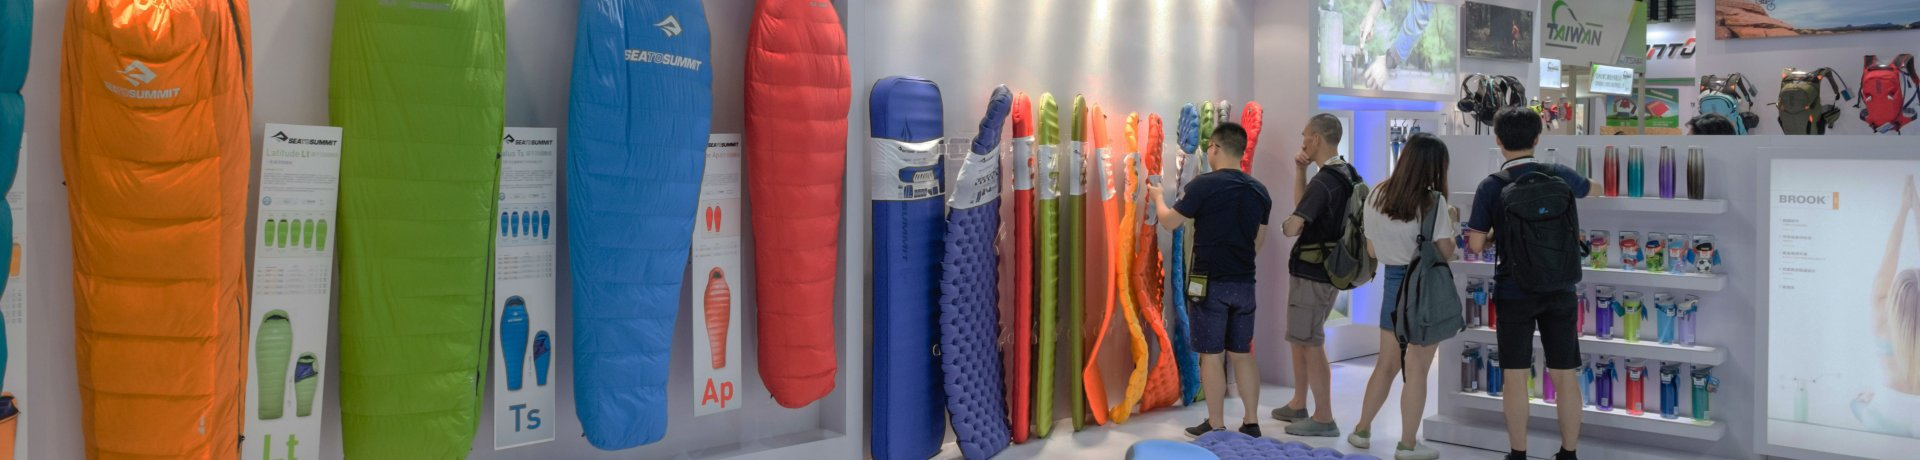 Exhibitor booth with sleeping bags at ISPO Shanghai